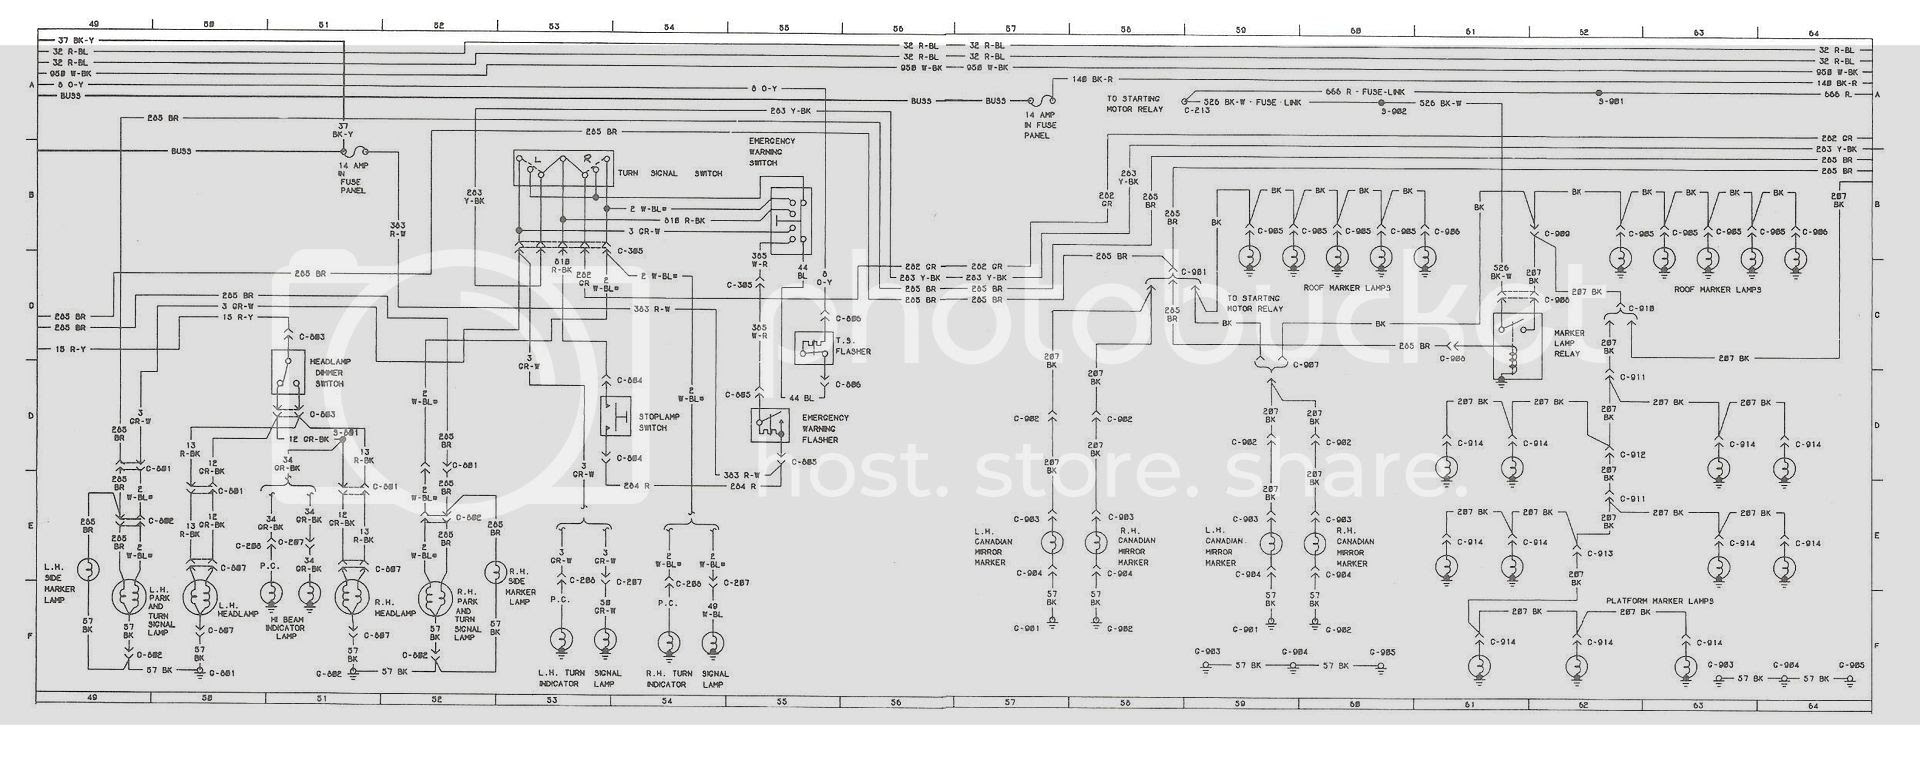 31 1977 Ford F150 Wiring Diagram - Wire Diagram Source ...